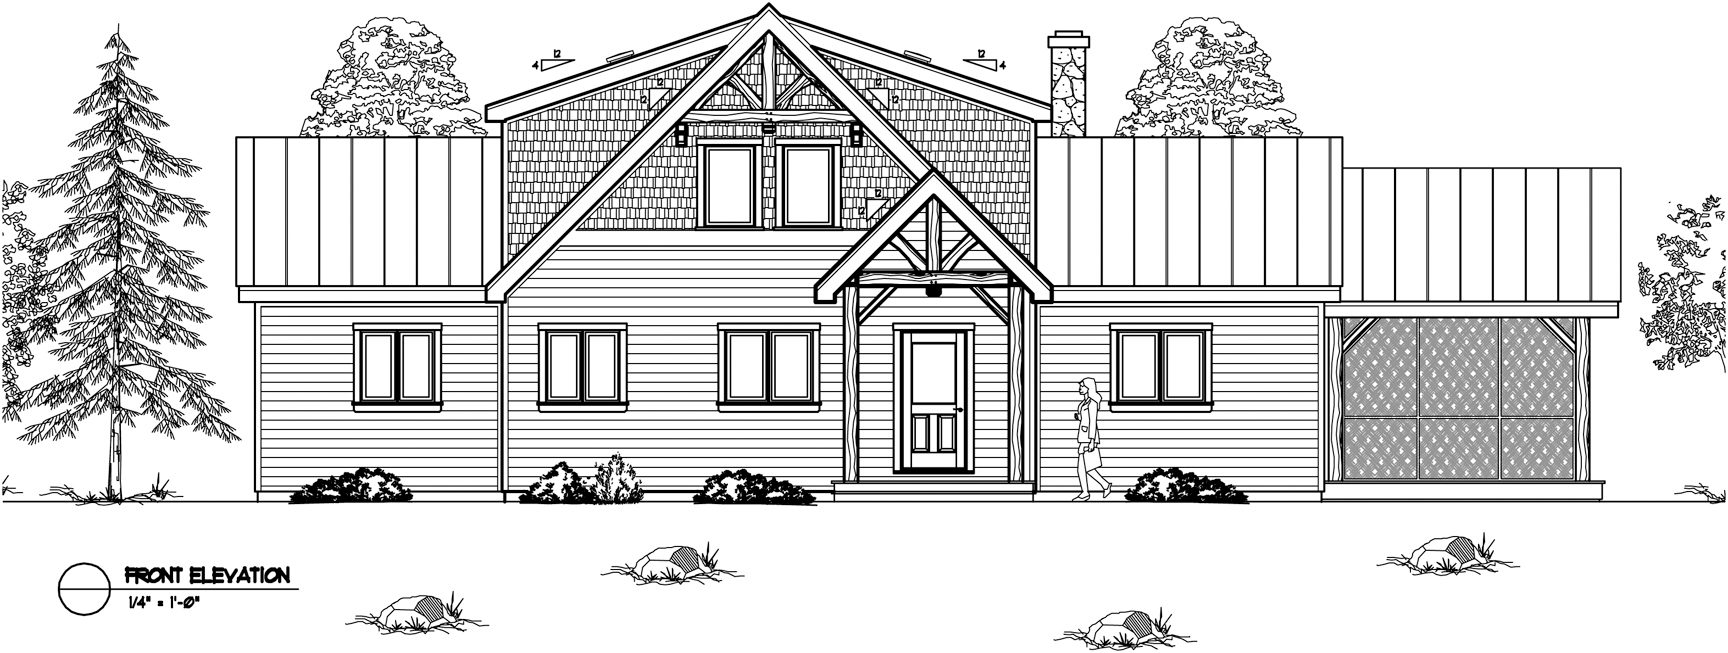 Normerica Timber Frames, House Plan, The Lennox 3546, Front Elevation